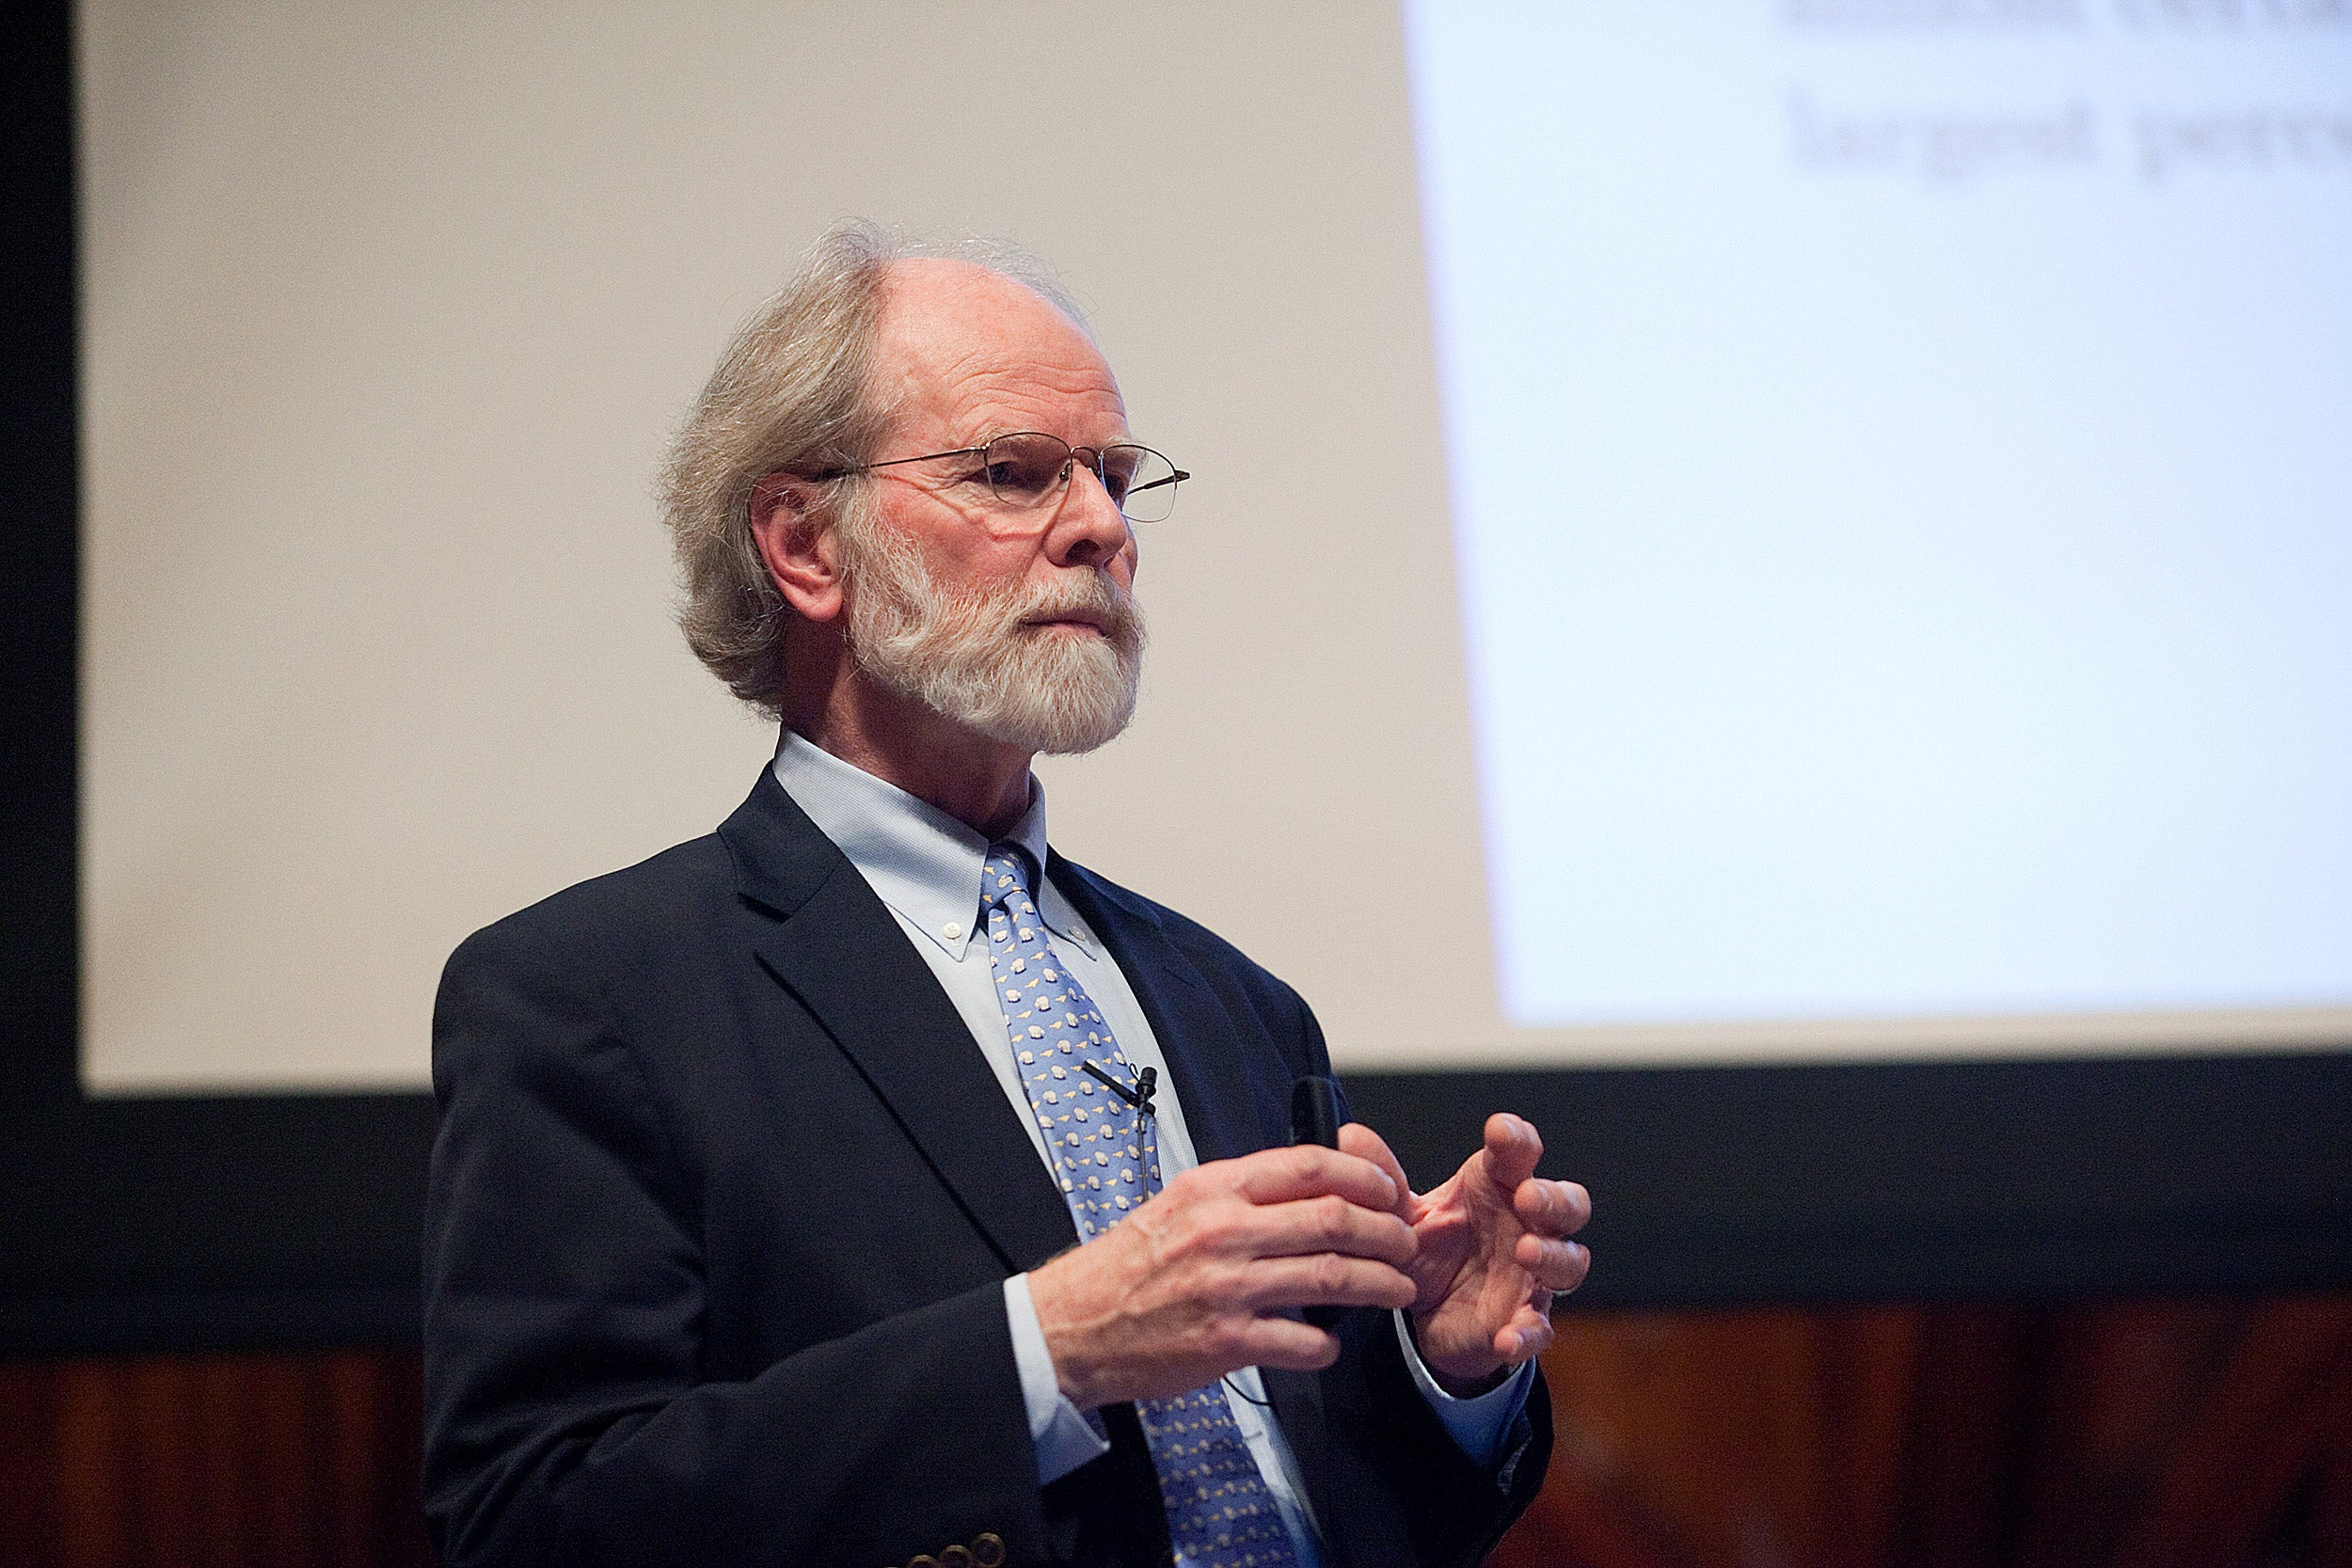 Tyler Prize winner James McCarthy, a professor of biological oceanography and Alexander Agassiz Professor of Biological Oceanography in the Museum of Comparative Zoology, remains optimistic that climate change is a solvable problem.